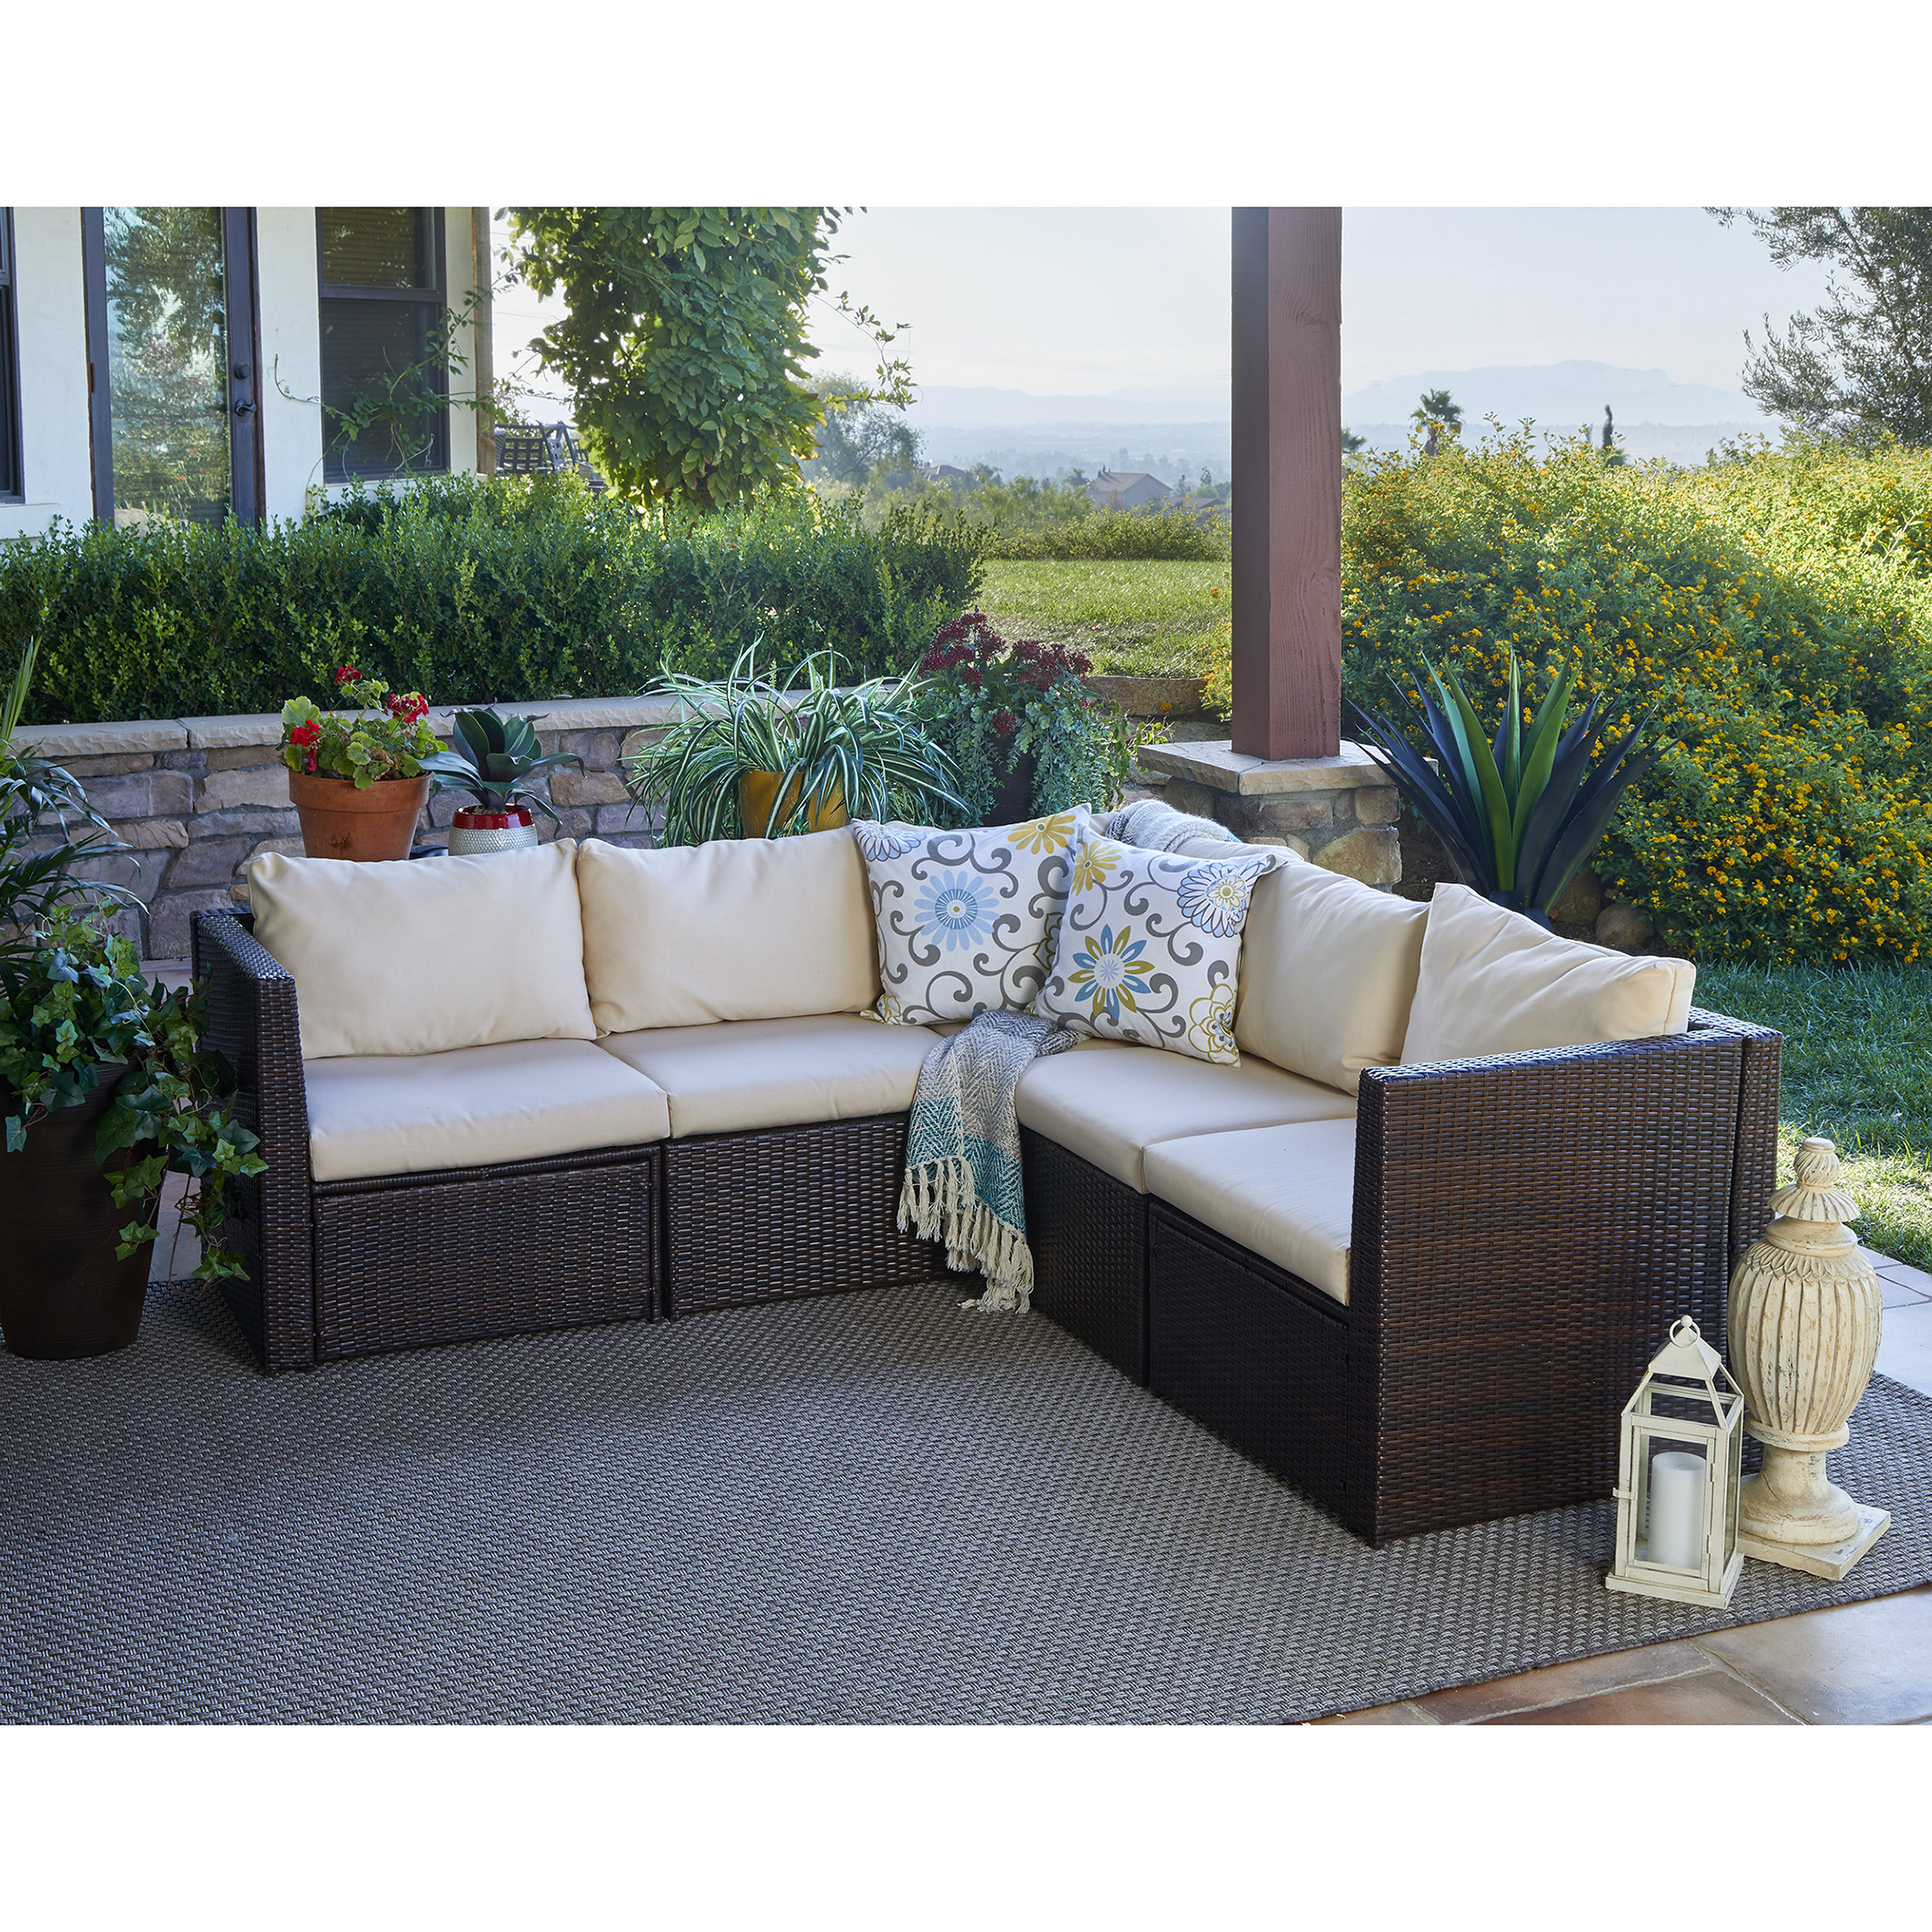 Favorite Larsen Patio Sectional With Cushions Throughout Purington Circular Patio Sectionals With Cushions (View 6 of 20)